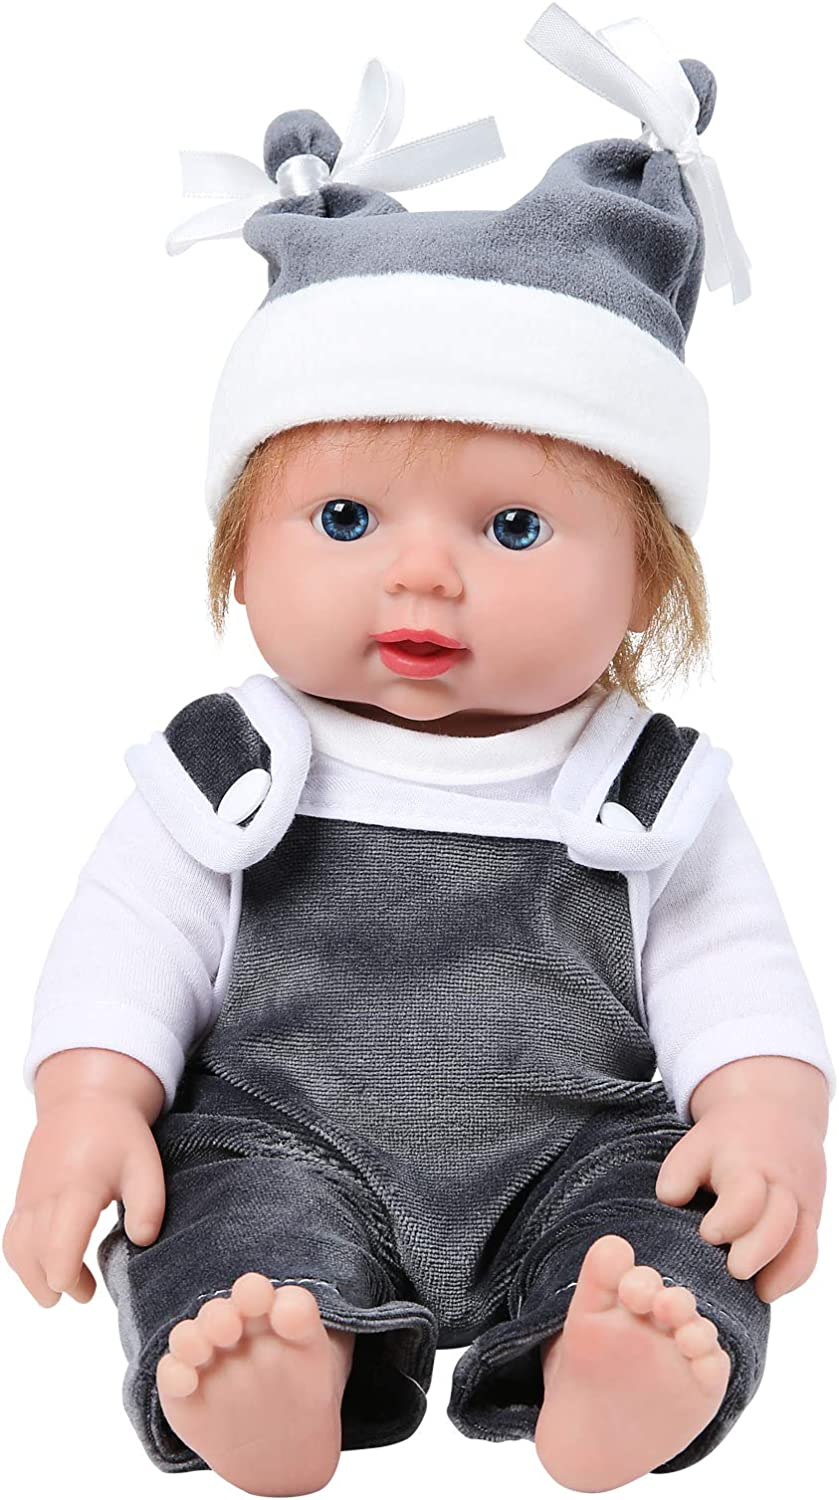 IVITA Silicone Baby Dolls Super intense Phoenix Mall SALE with Rea Material Vinyl Hair Not